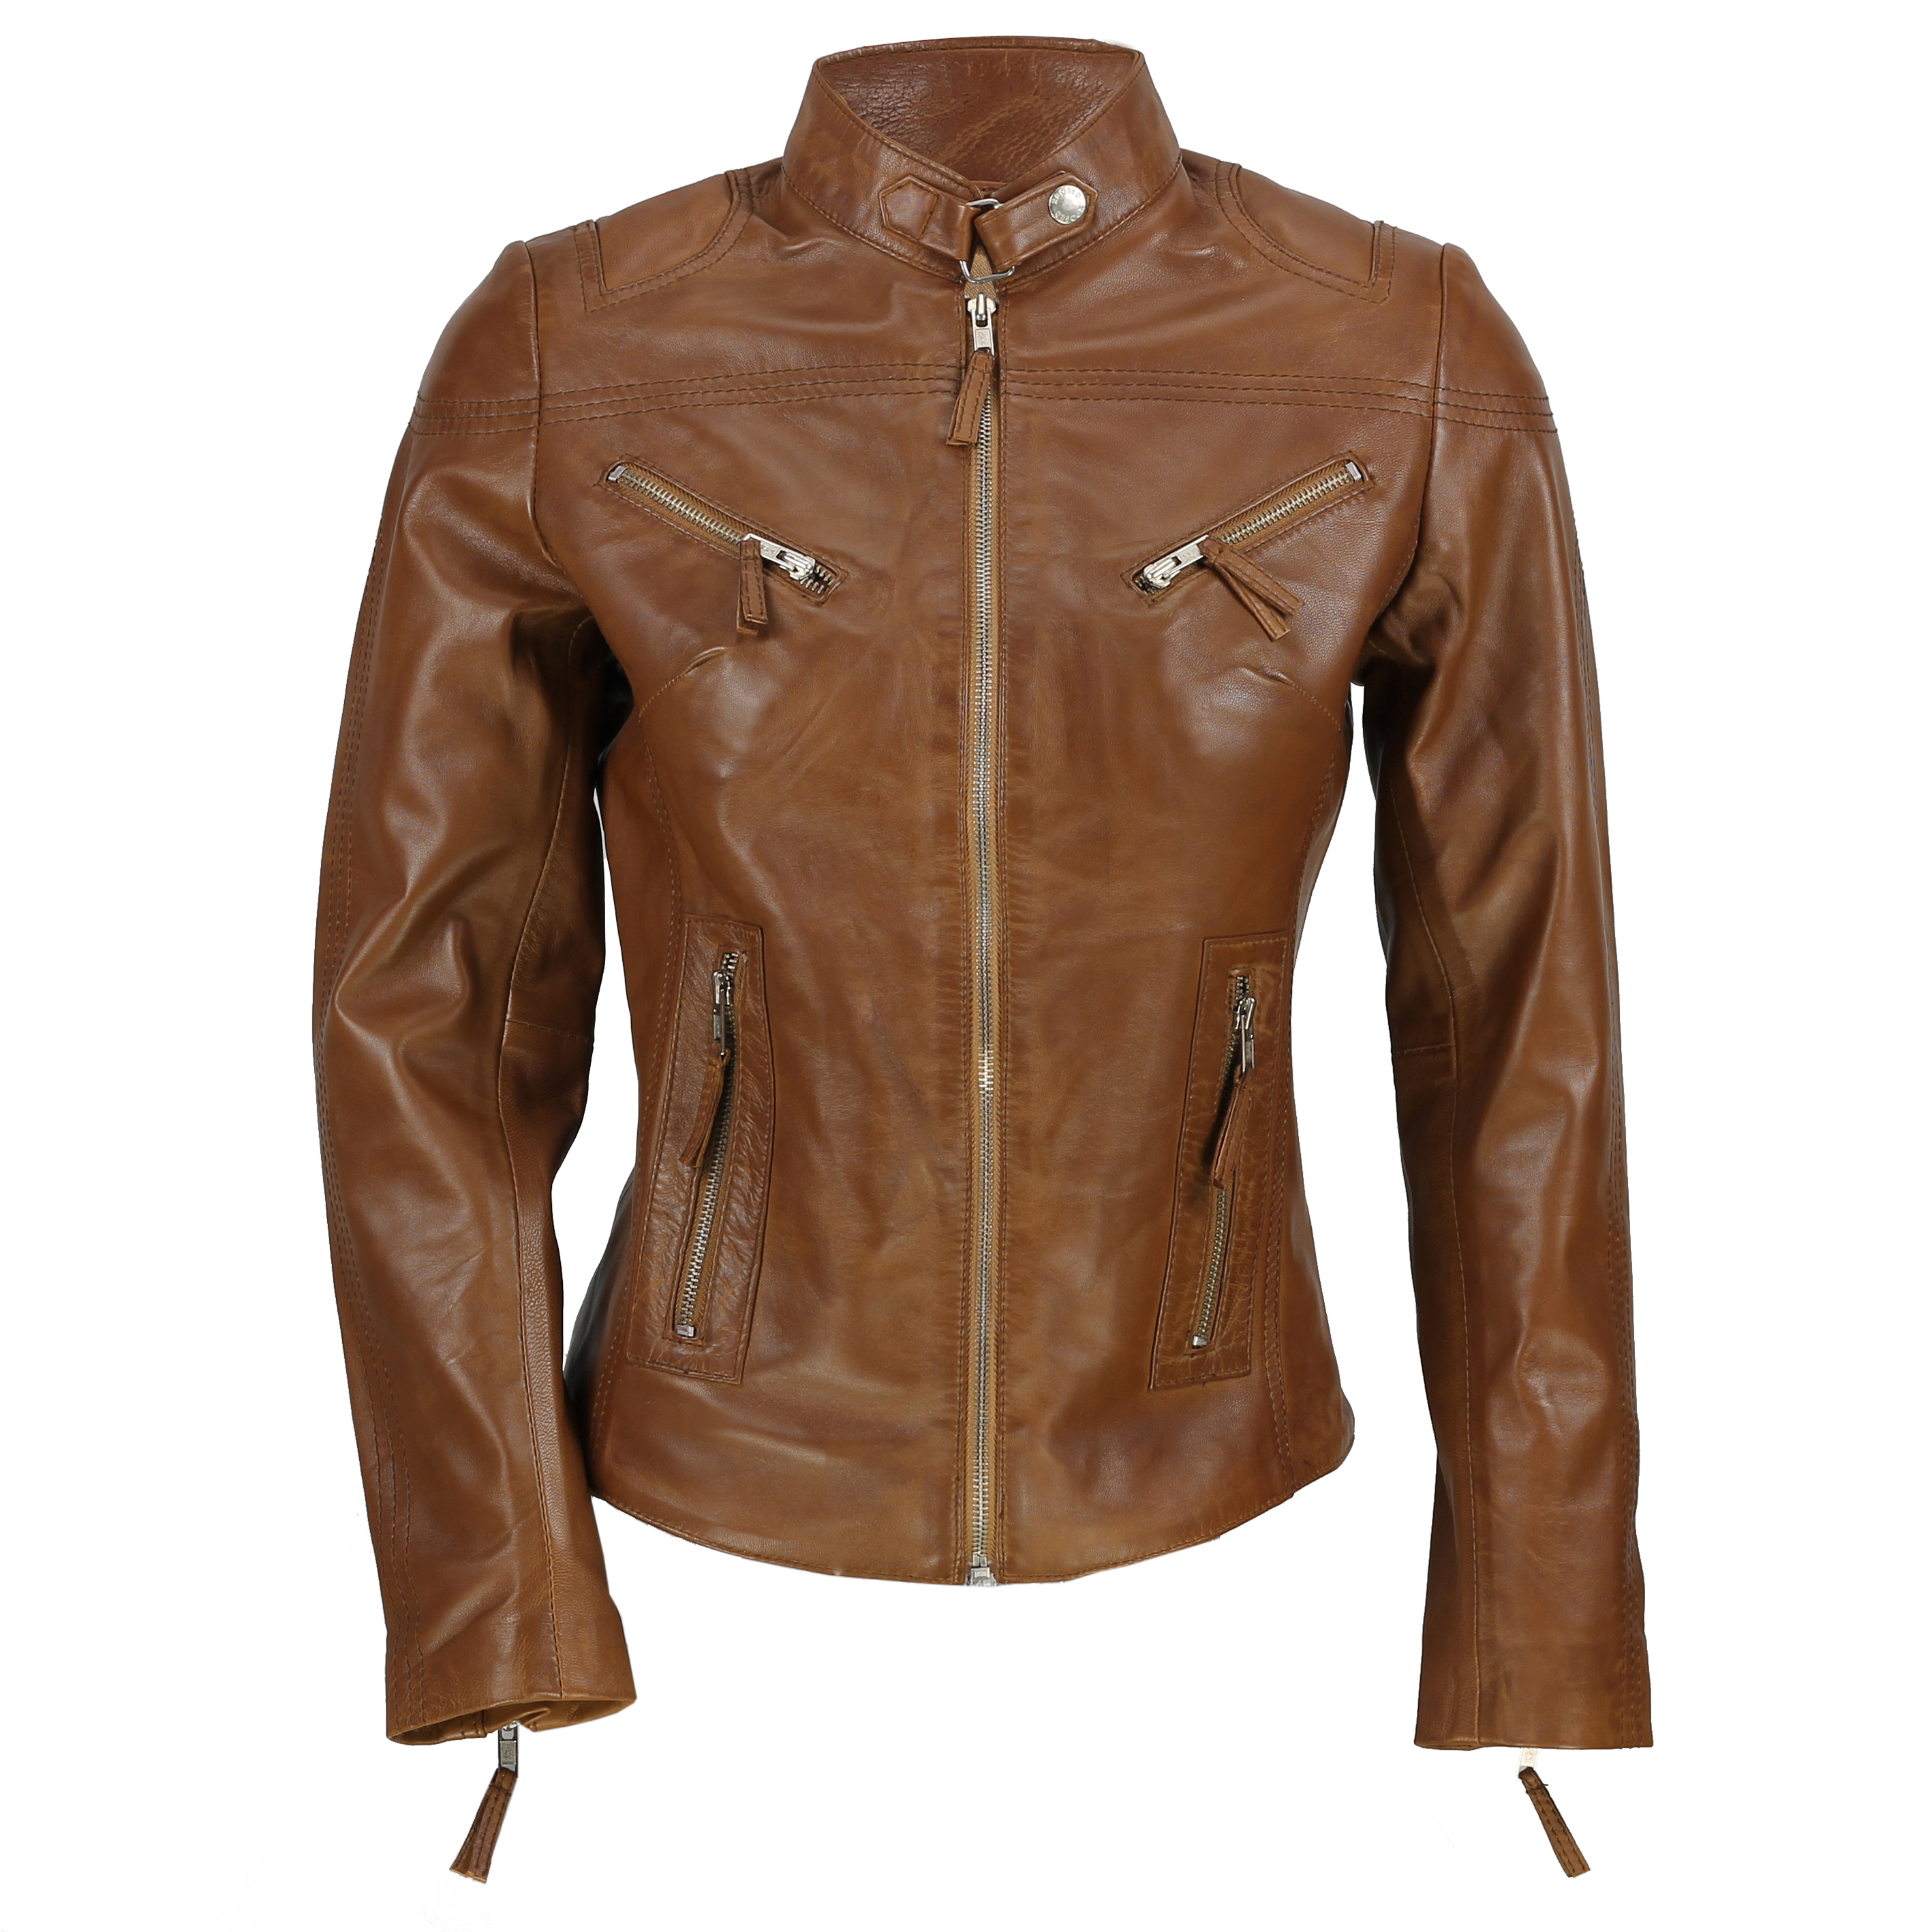 25e54d22 Details about Ladies Women's Real Leather Vintage Fitted Tan Brown Biker  Jacket Size S – 5XL